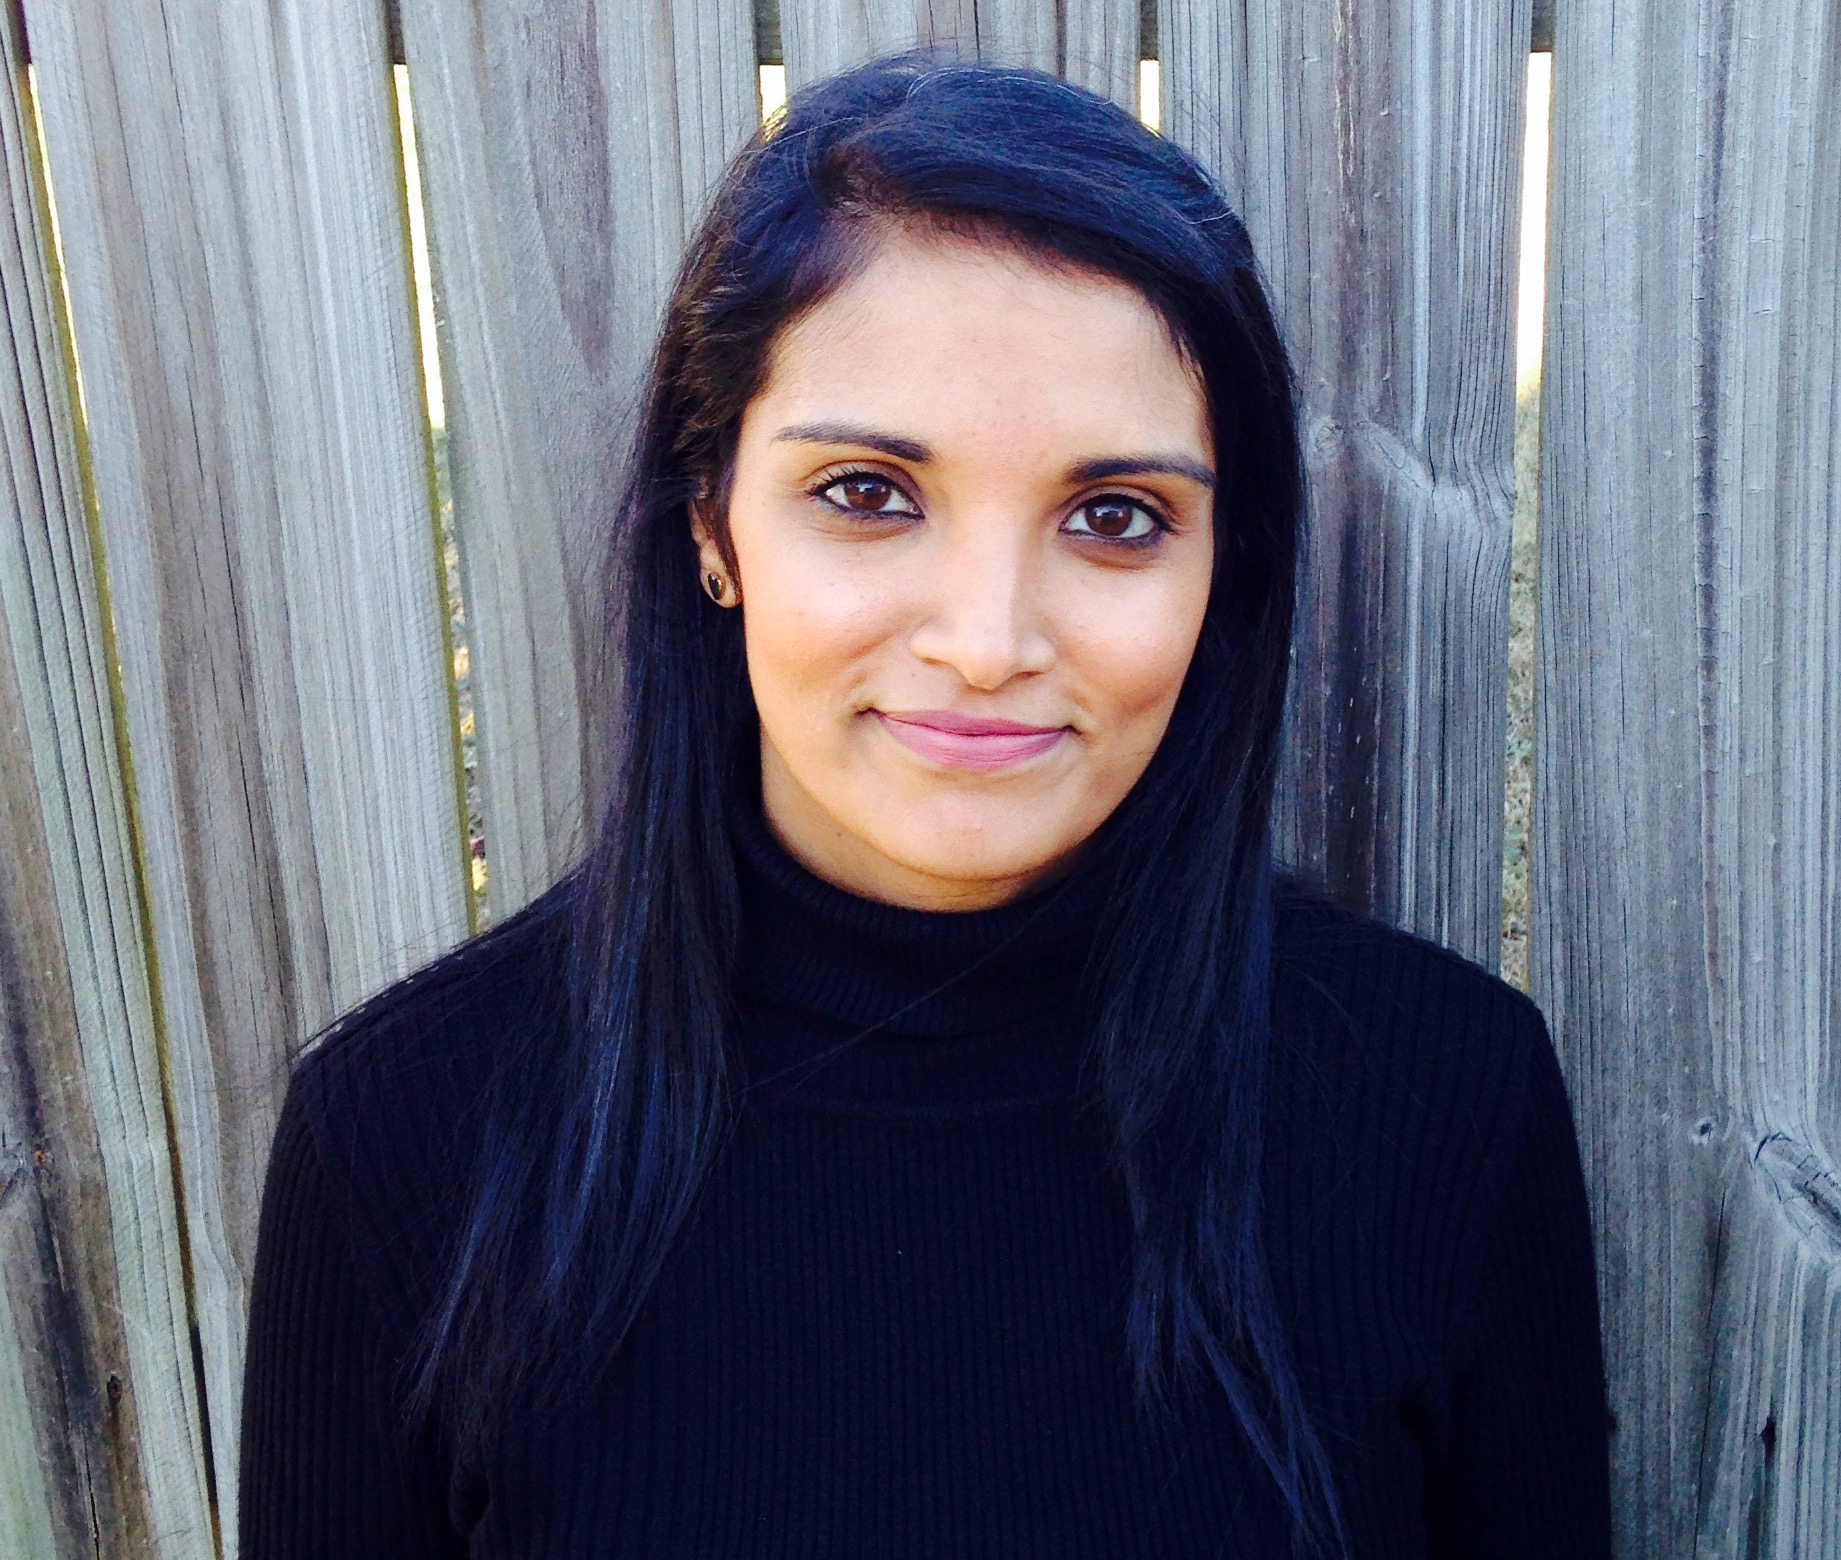 """<p>Author Sandhya Menon of Monument. Her book, """"When Dimple Met Rishi,"""" is a romantic comedy for young adults about twoAmerican teenagers whose India-born parentswant to arrange their marriage.</p>"""